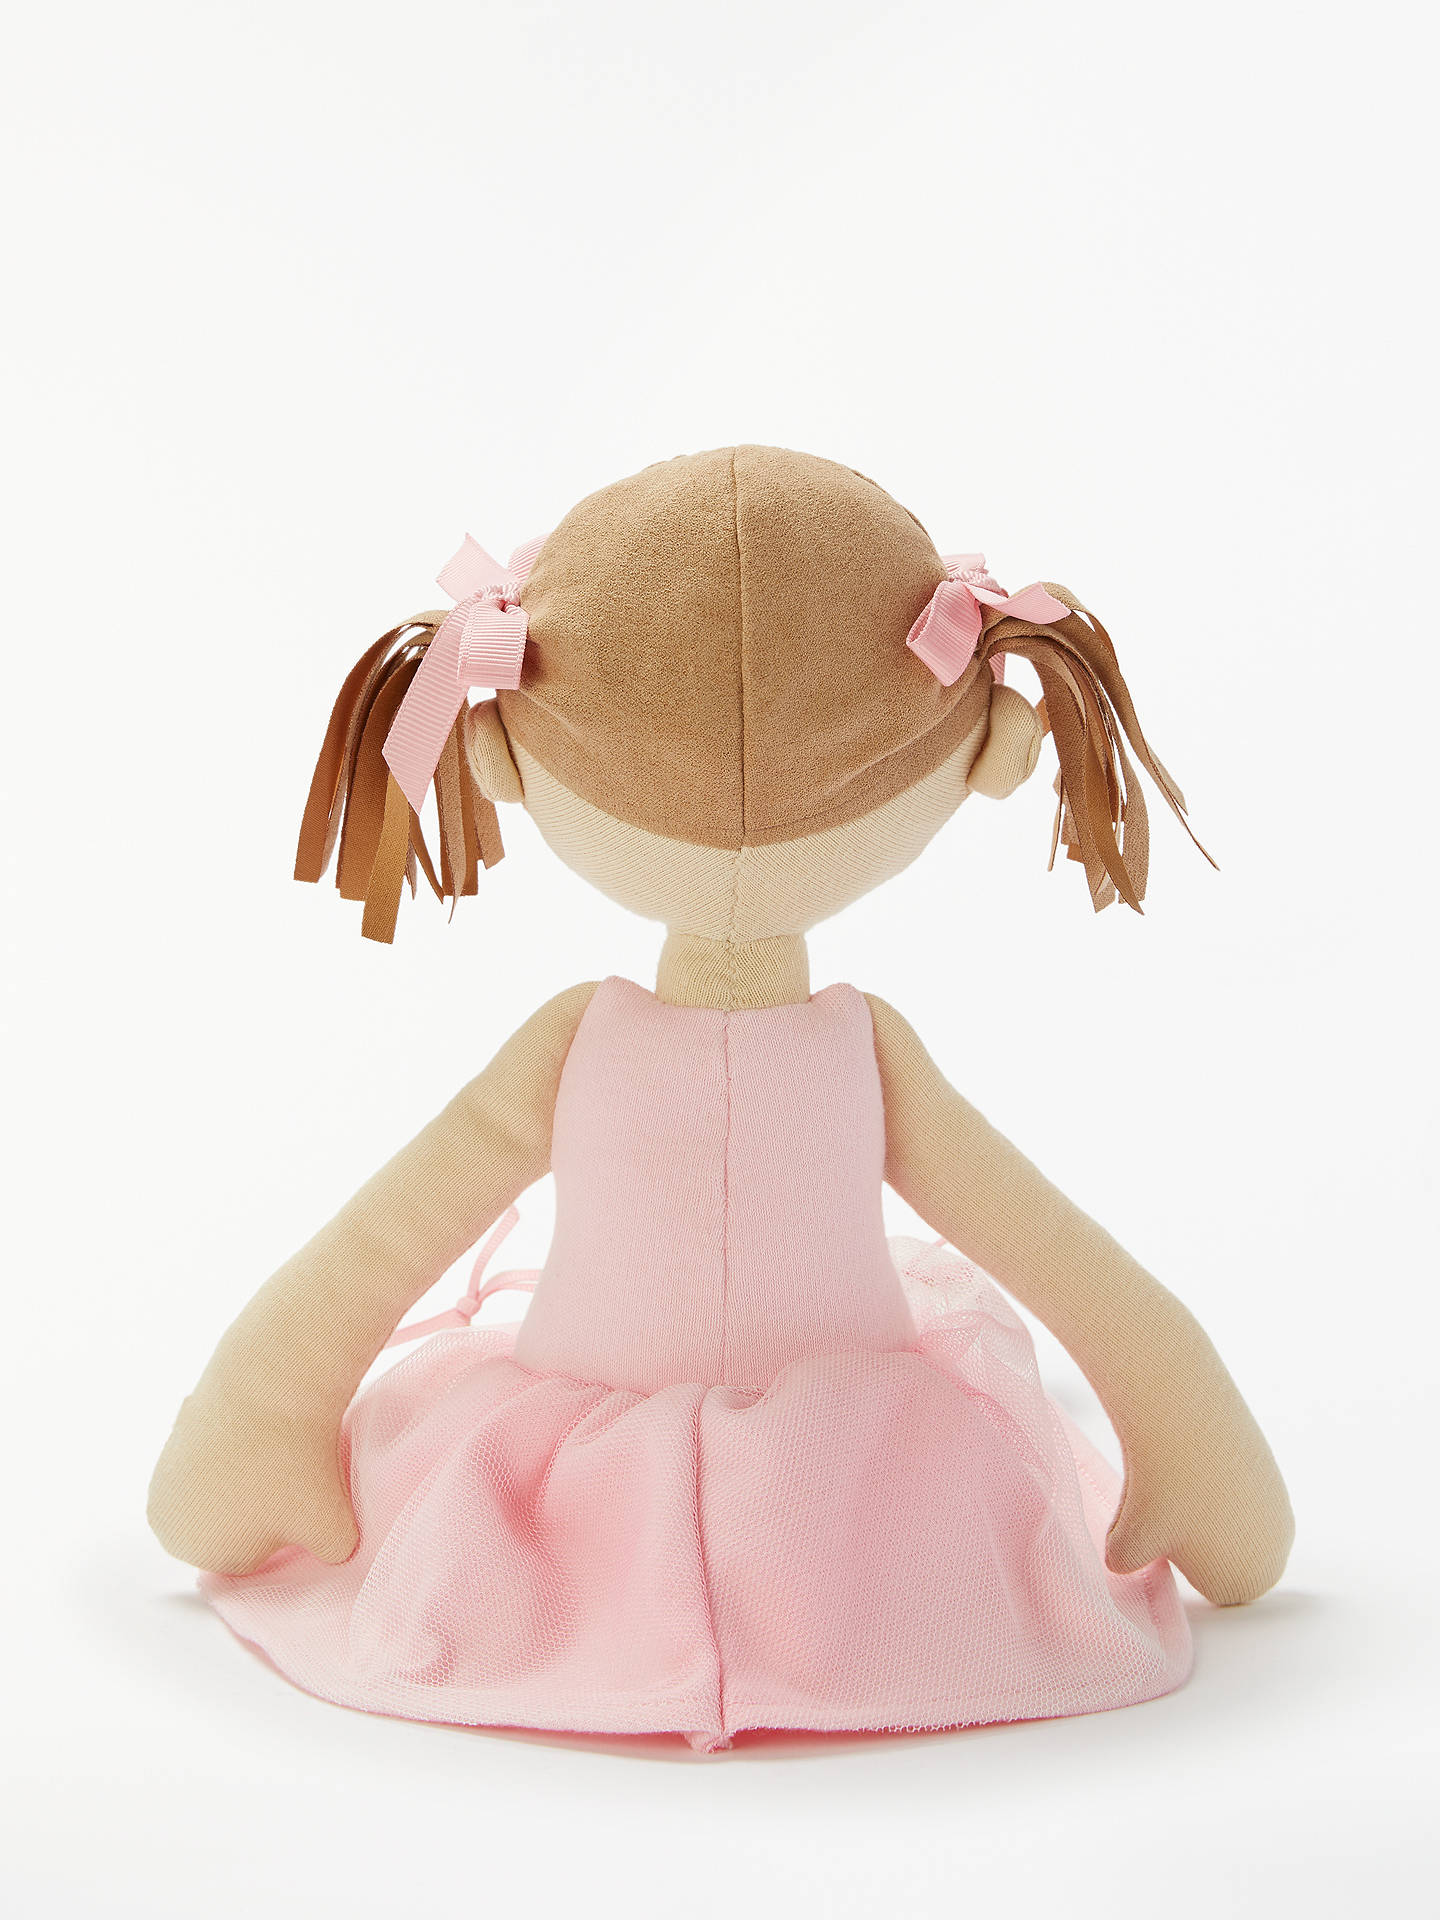 Buy John Lewis & Partners Fairy Ballerina Ragdoll Soft Toy Online at johnlewis.com